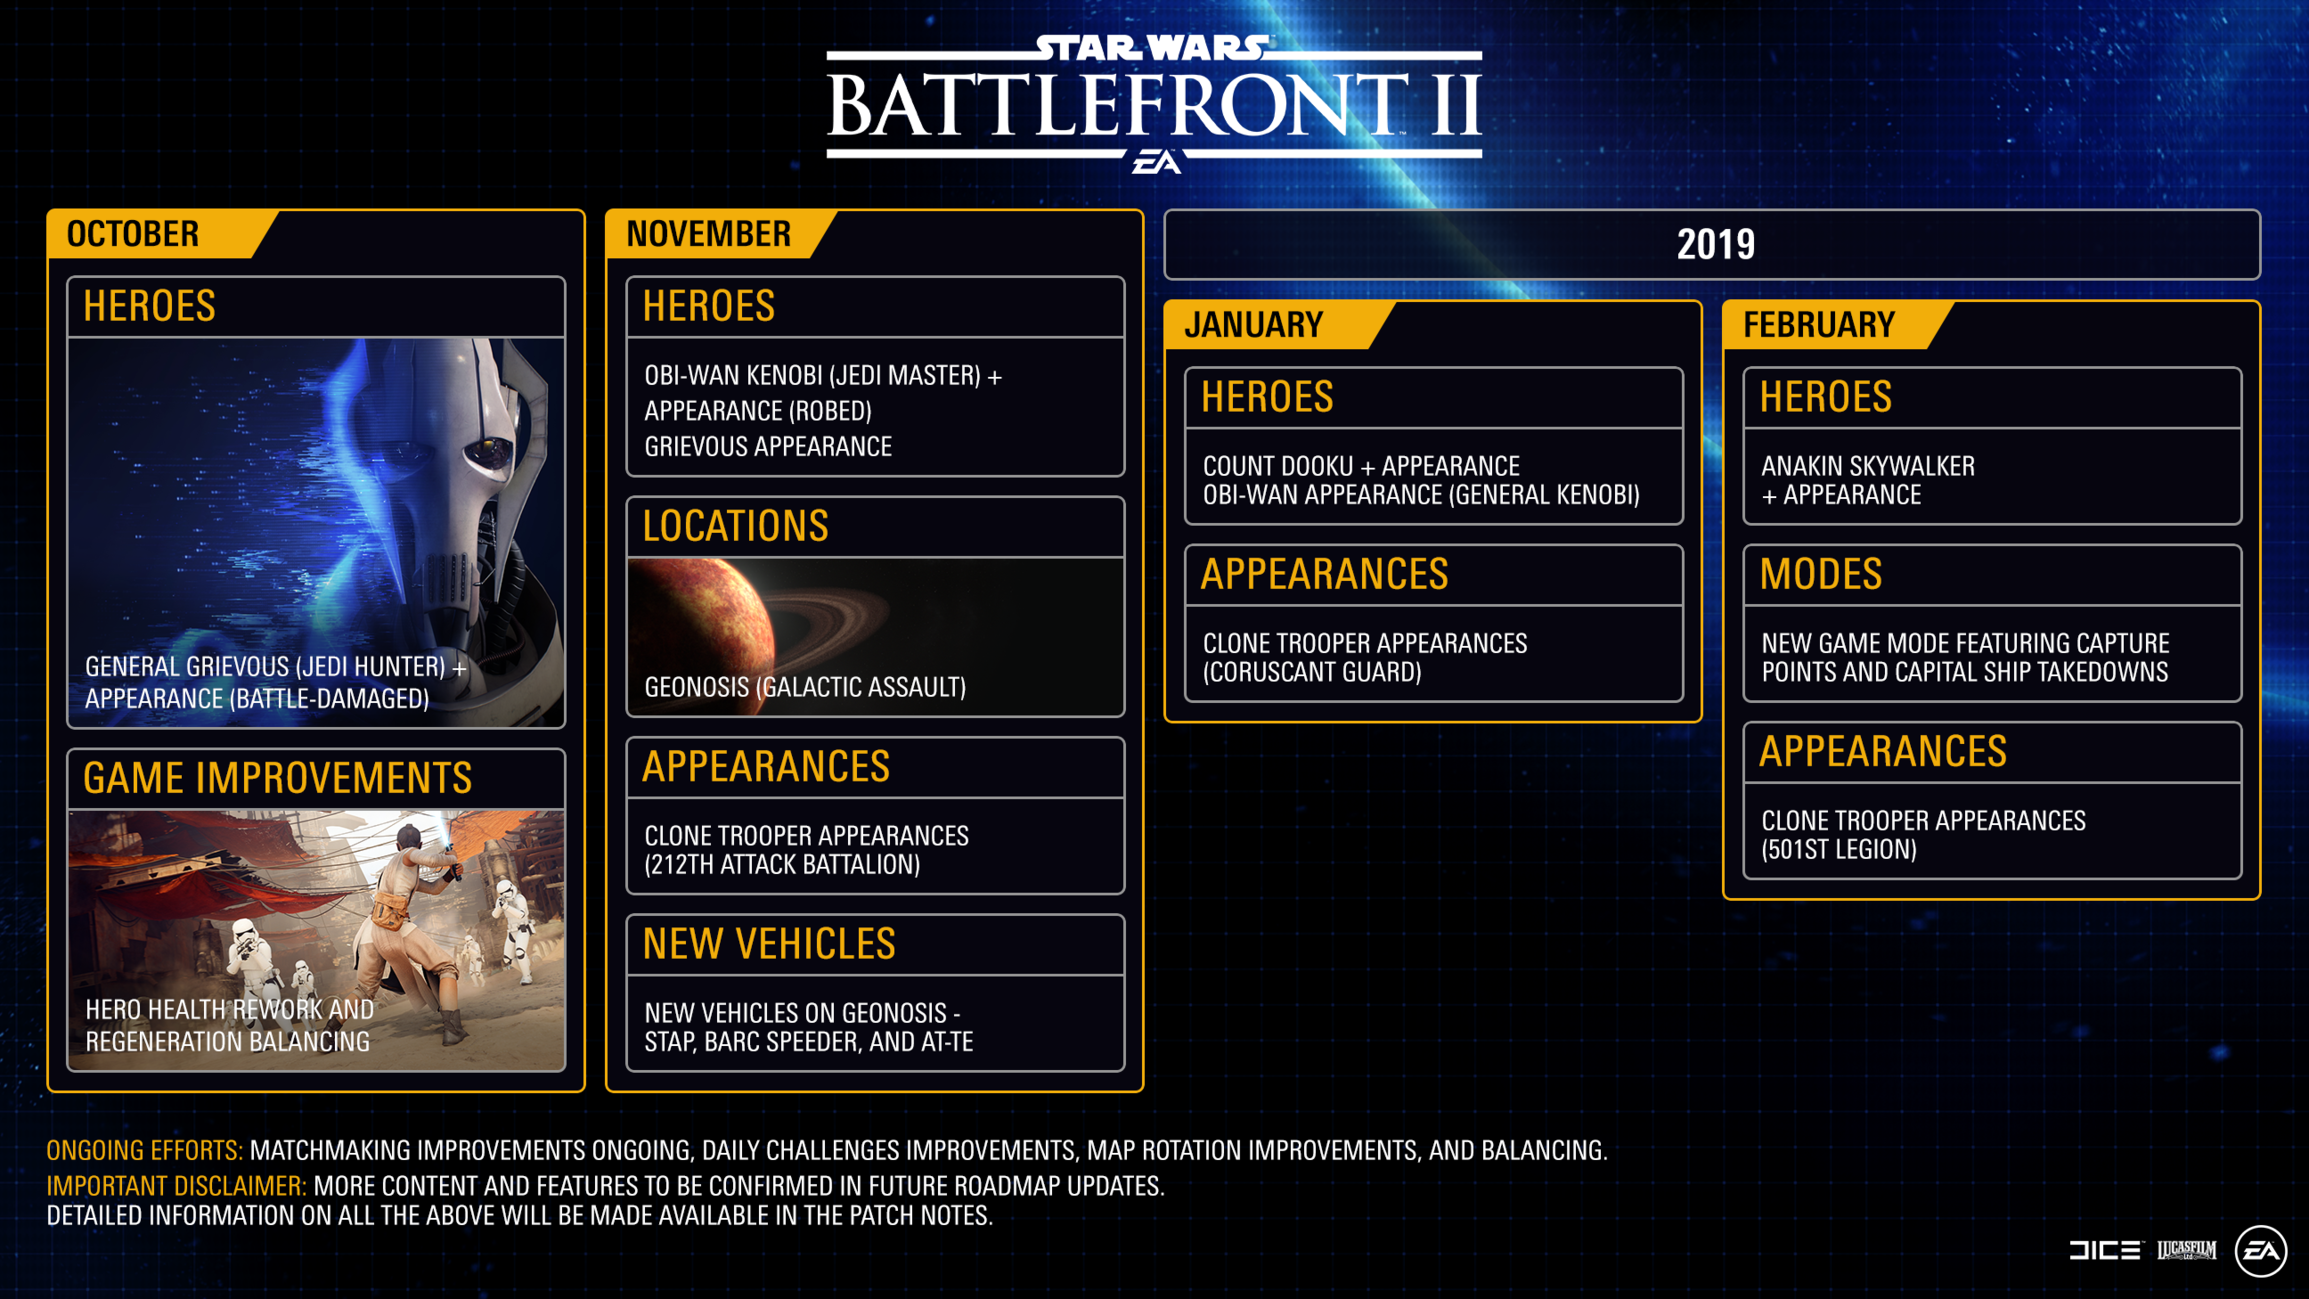 Our Updated Star Wars™ Battlefront™ II Roadmap Details